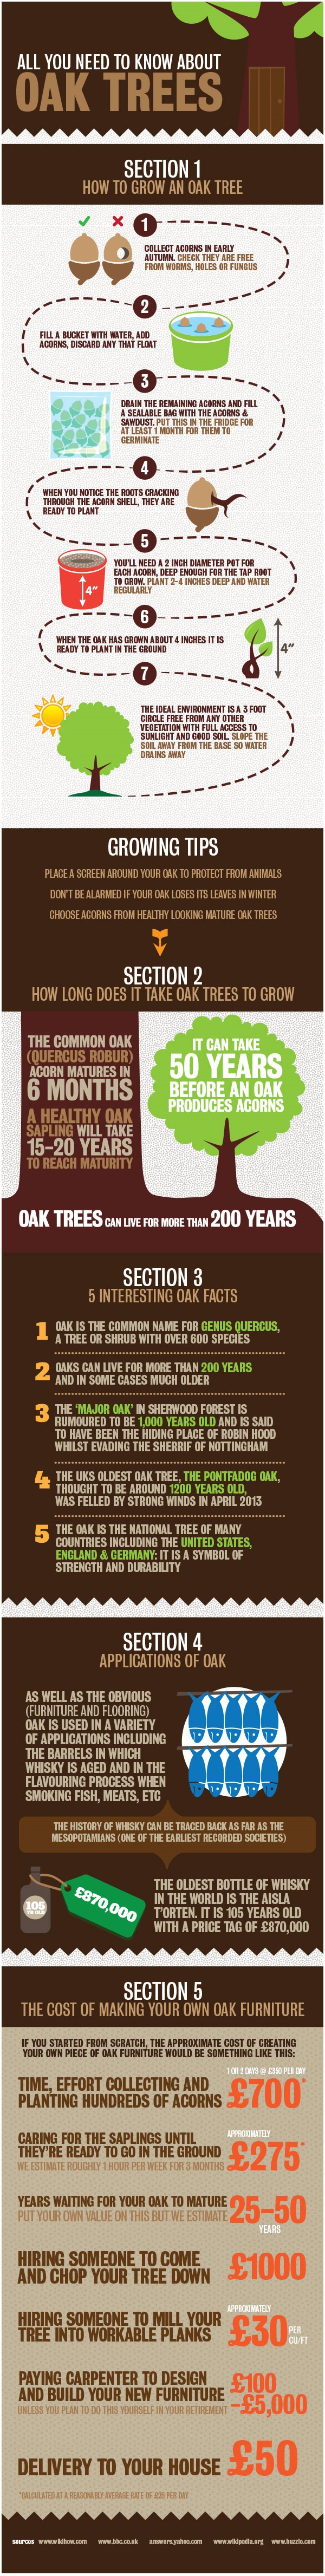 All You Need To Know About Oak